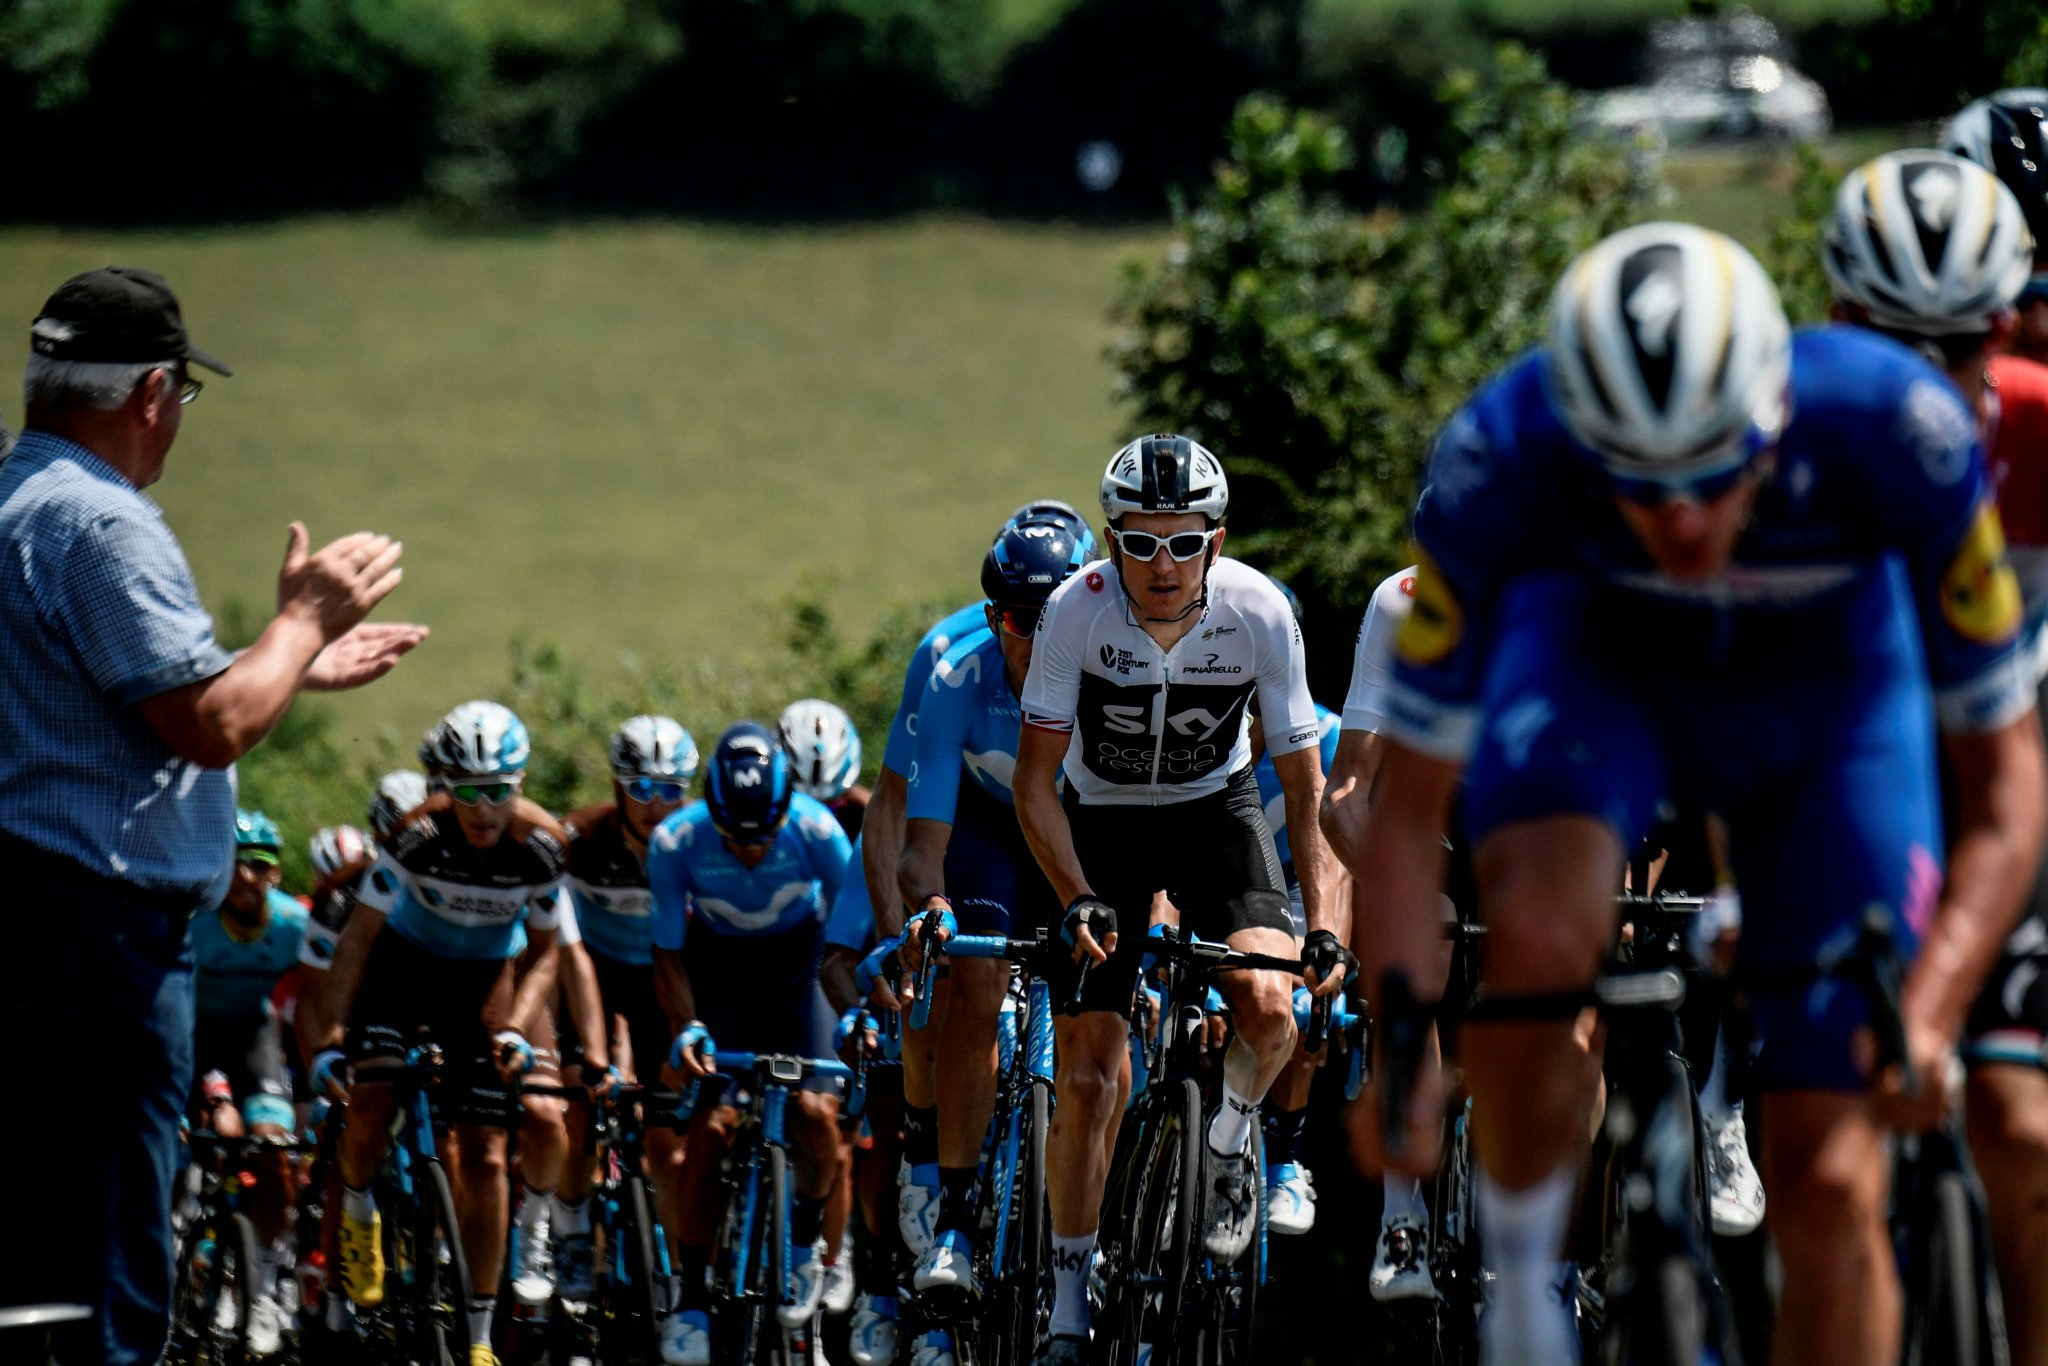 BREAKING: @TeamSky's @GeraintThomas86 wins stage 11 of @LeTour to take yellow jersey as stage winner #SSN #TDF2018 https://t.co/rSrvuhHQK7